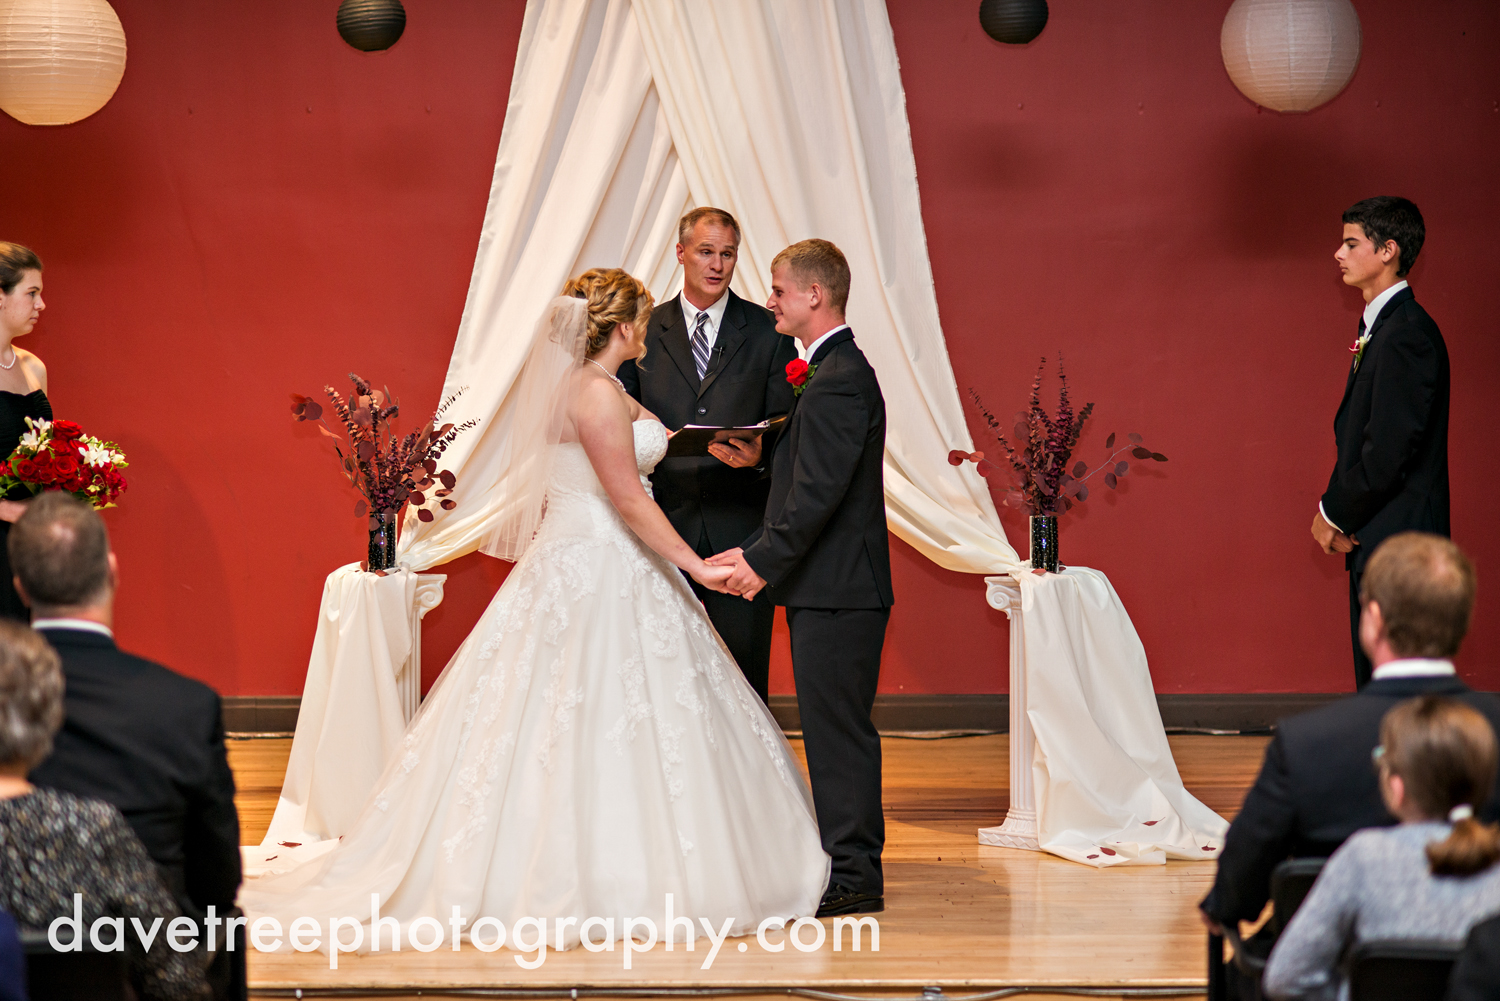 holland_wedding_photographer_37.jpg